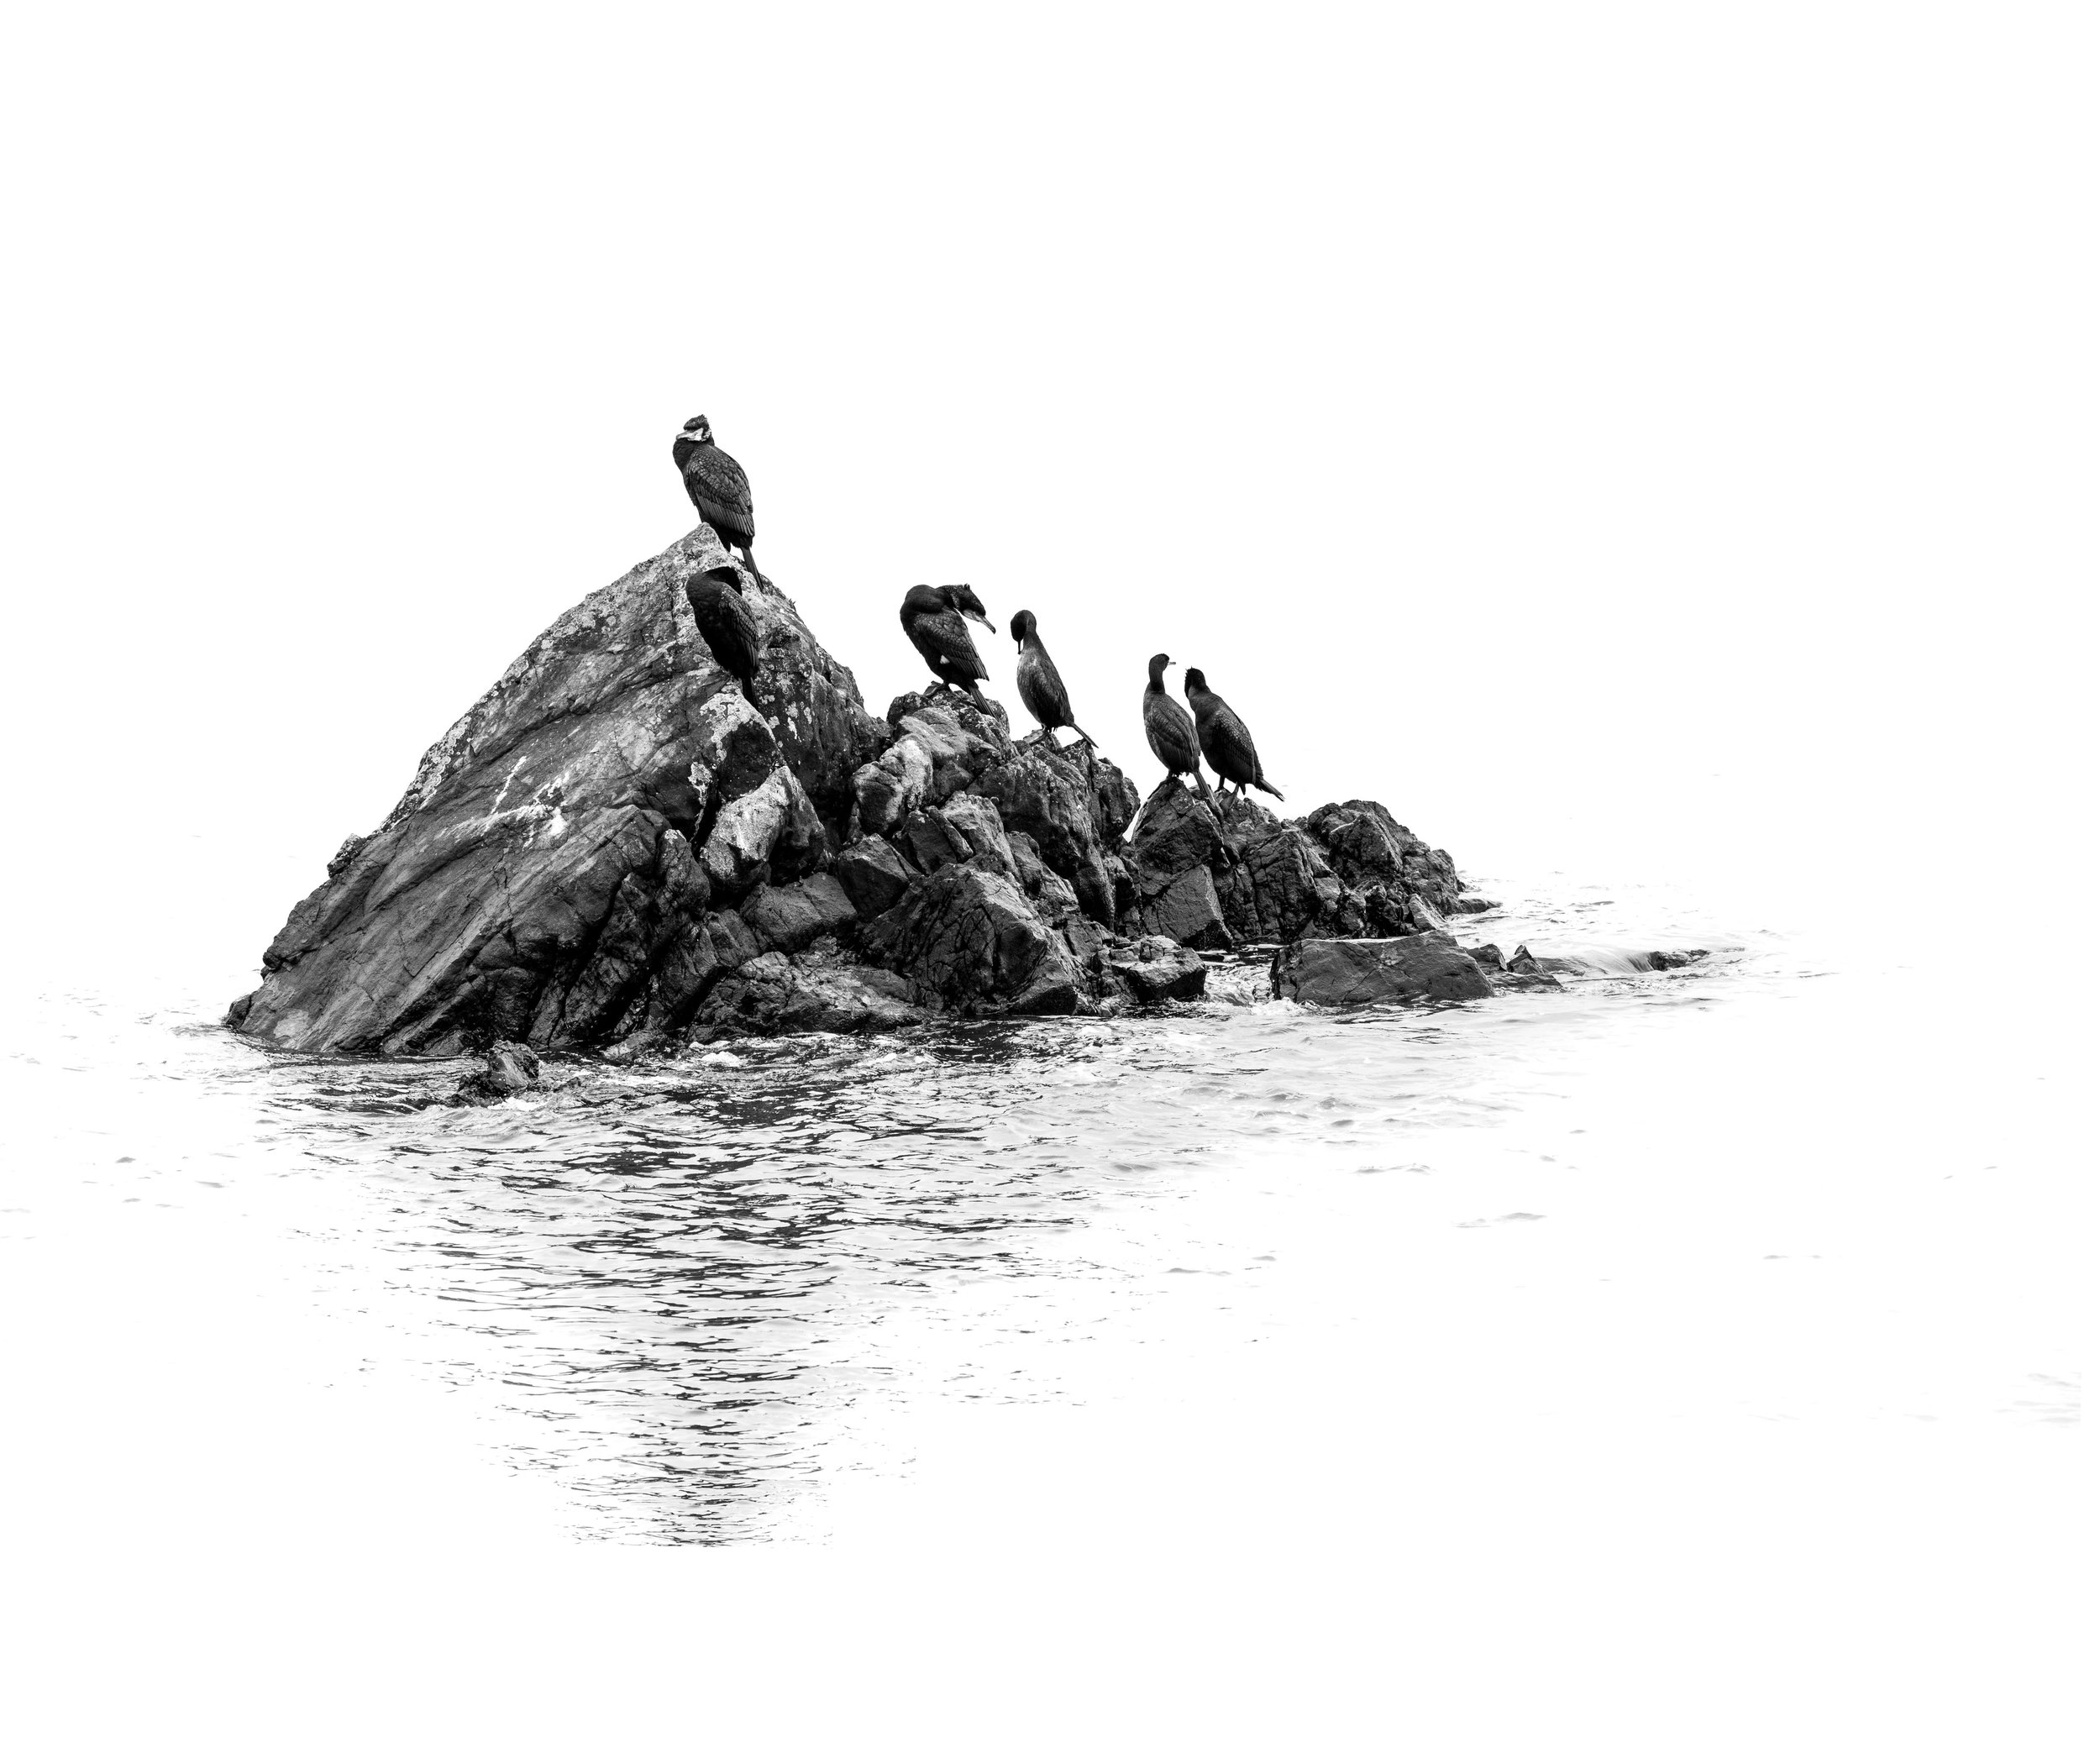 Bird-on-a-rock.jpg